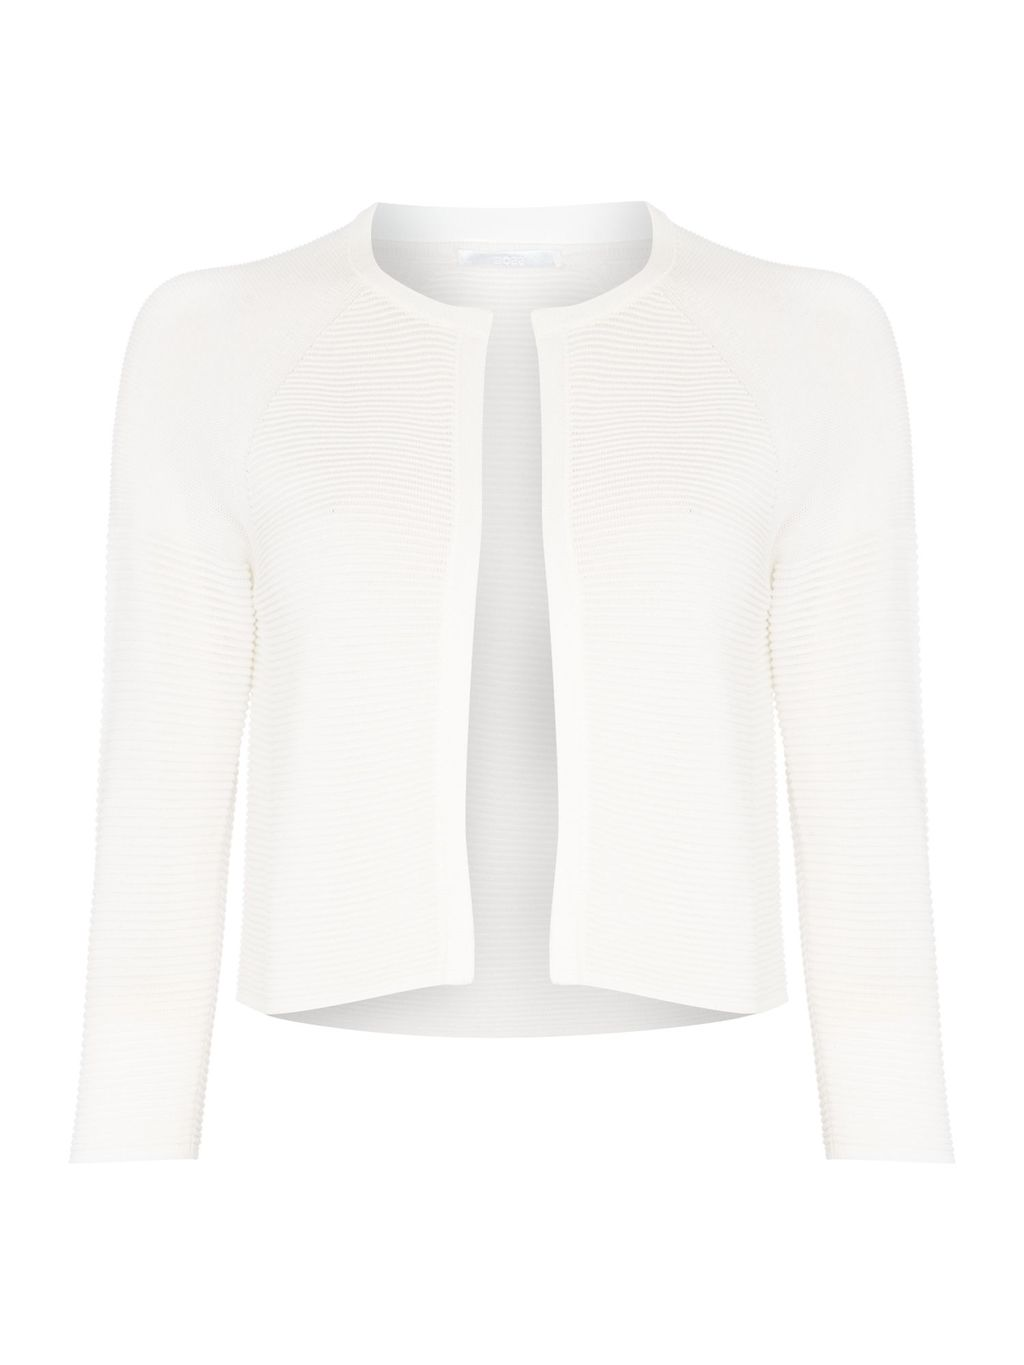 Faria Cropped Bolero Cardigan, Cream - pattern: plain; style: bolero/shrug; length: cropped; neckline: collarless open; predominant colour: ivory/cream; occasions: casual, evening, occasion, creative work; fibres: viscose/rayon - stretch; fit: standard fit; sleeve length: 3/4 length; sleeve style: standard; texture group: knits/crochet; pattern type: knitted - fine stitch; season: s/s 2015; wardrobe: basic